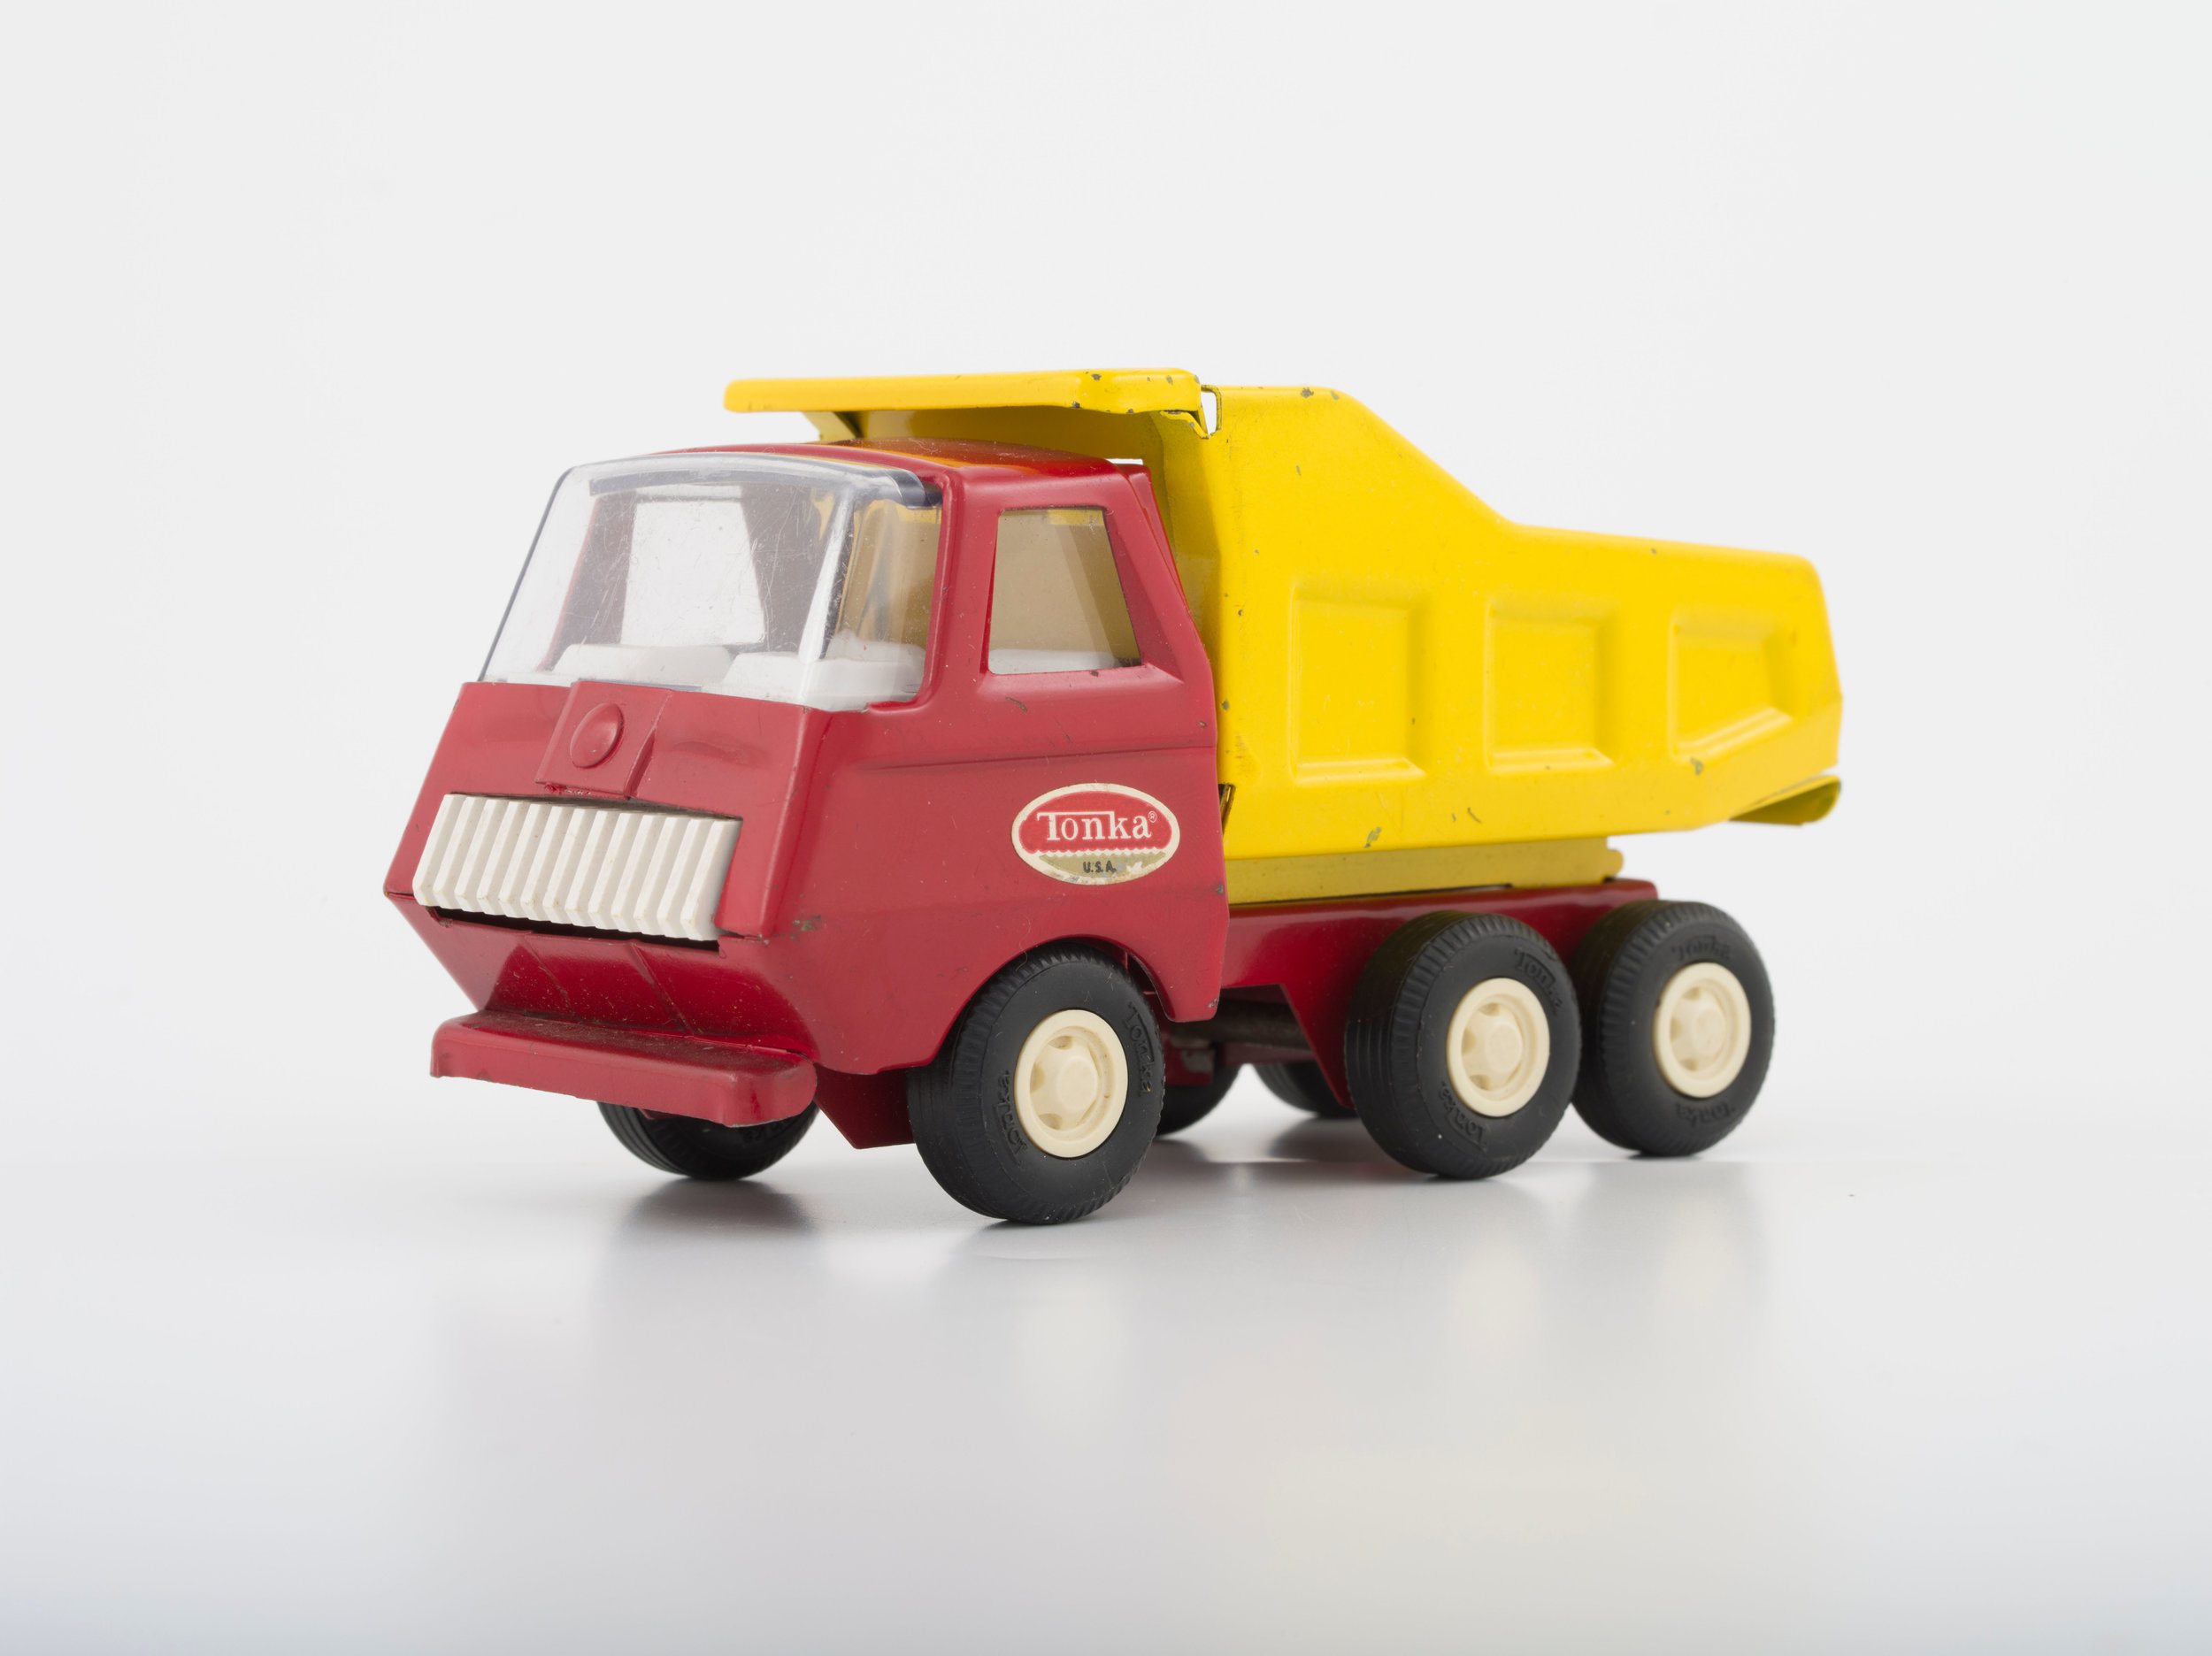 Which of these retro toys did you love as a child? — Yours